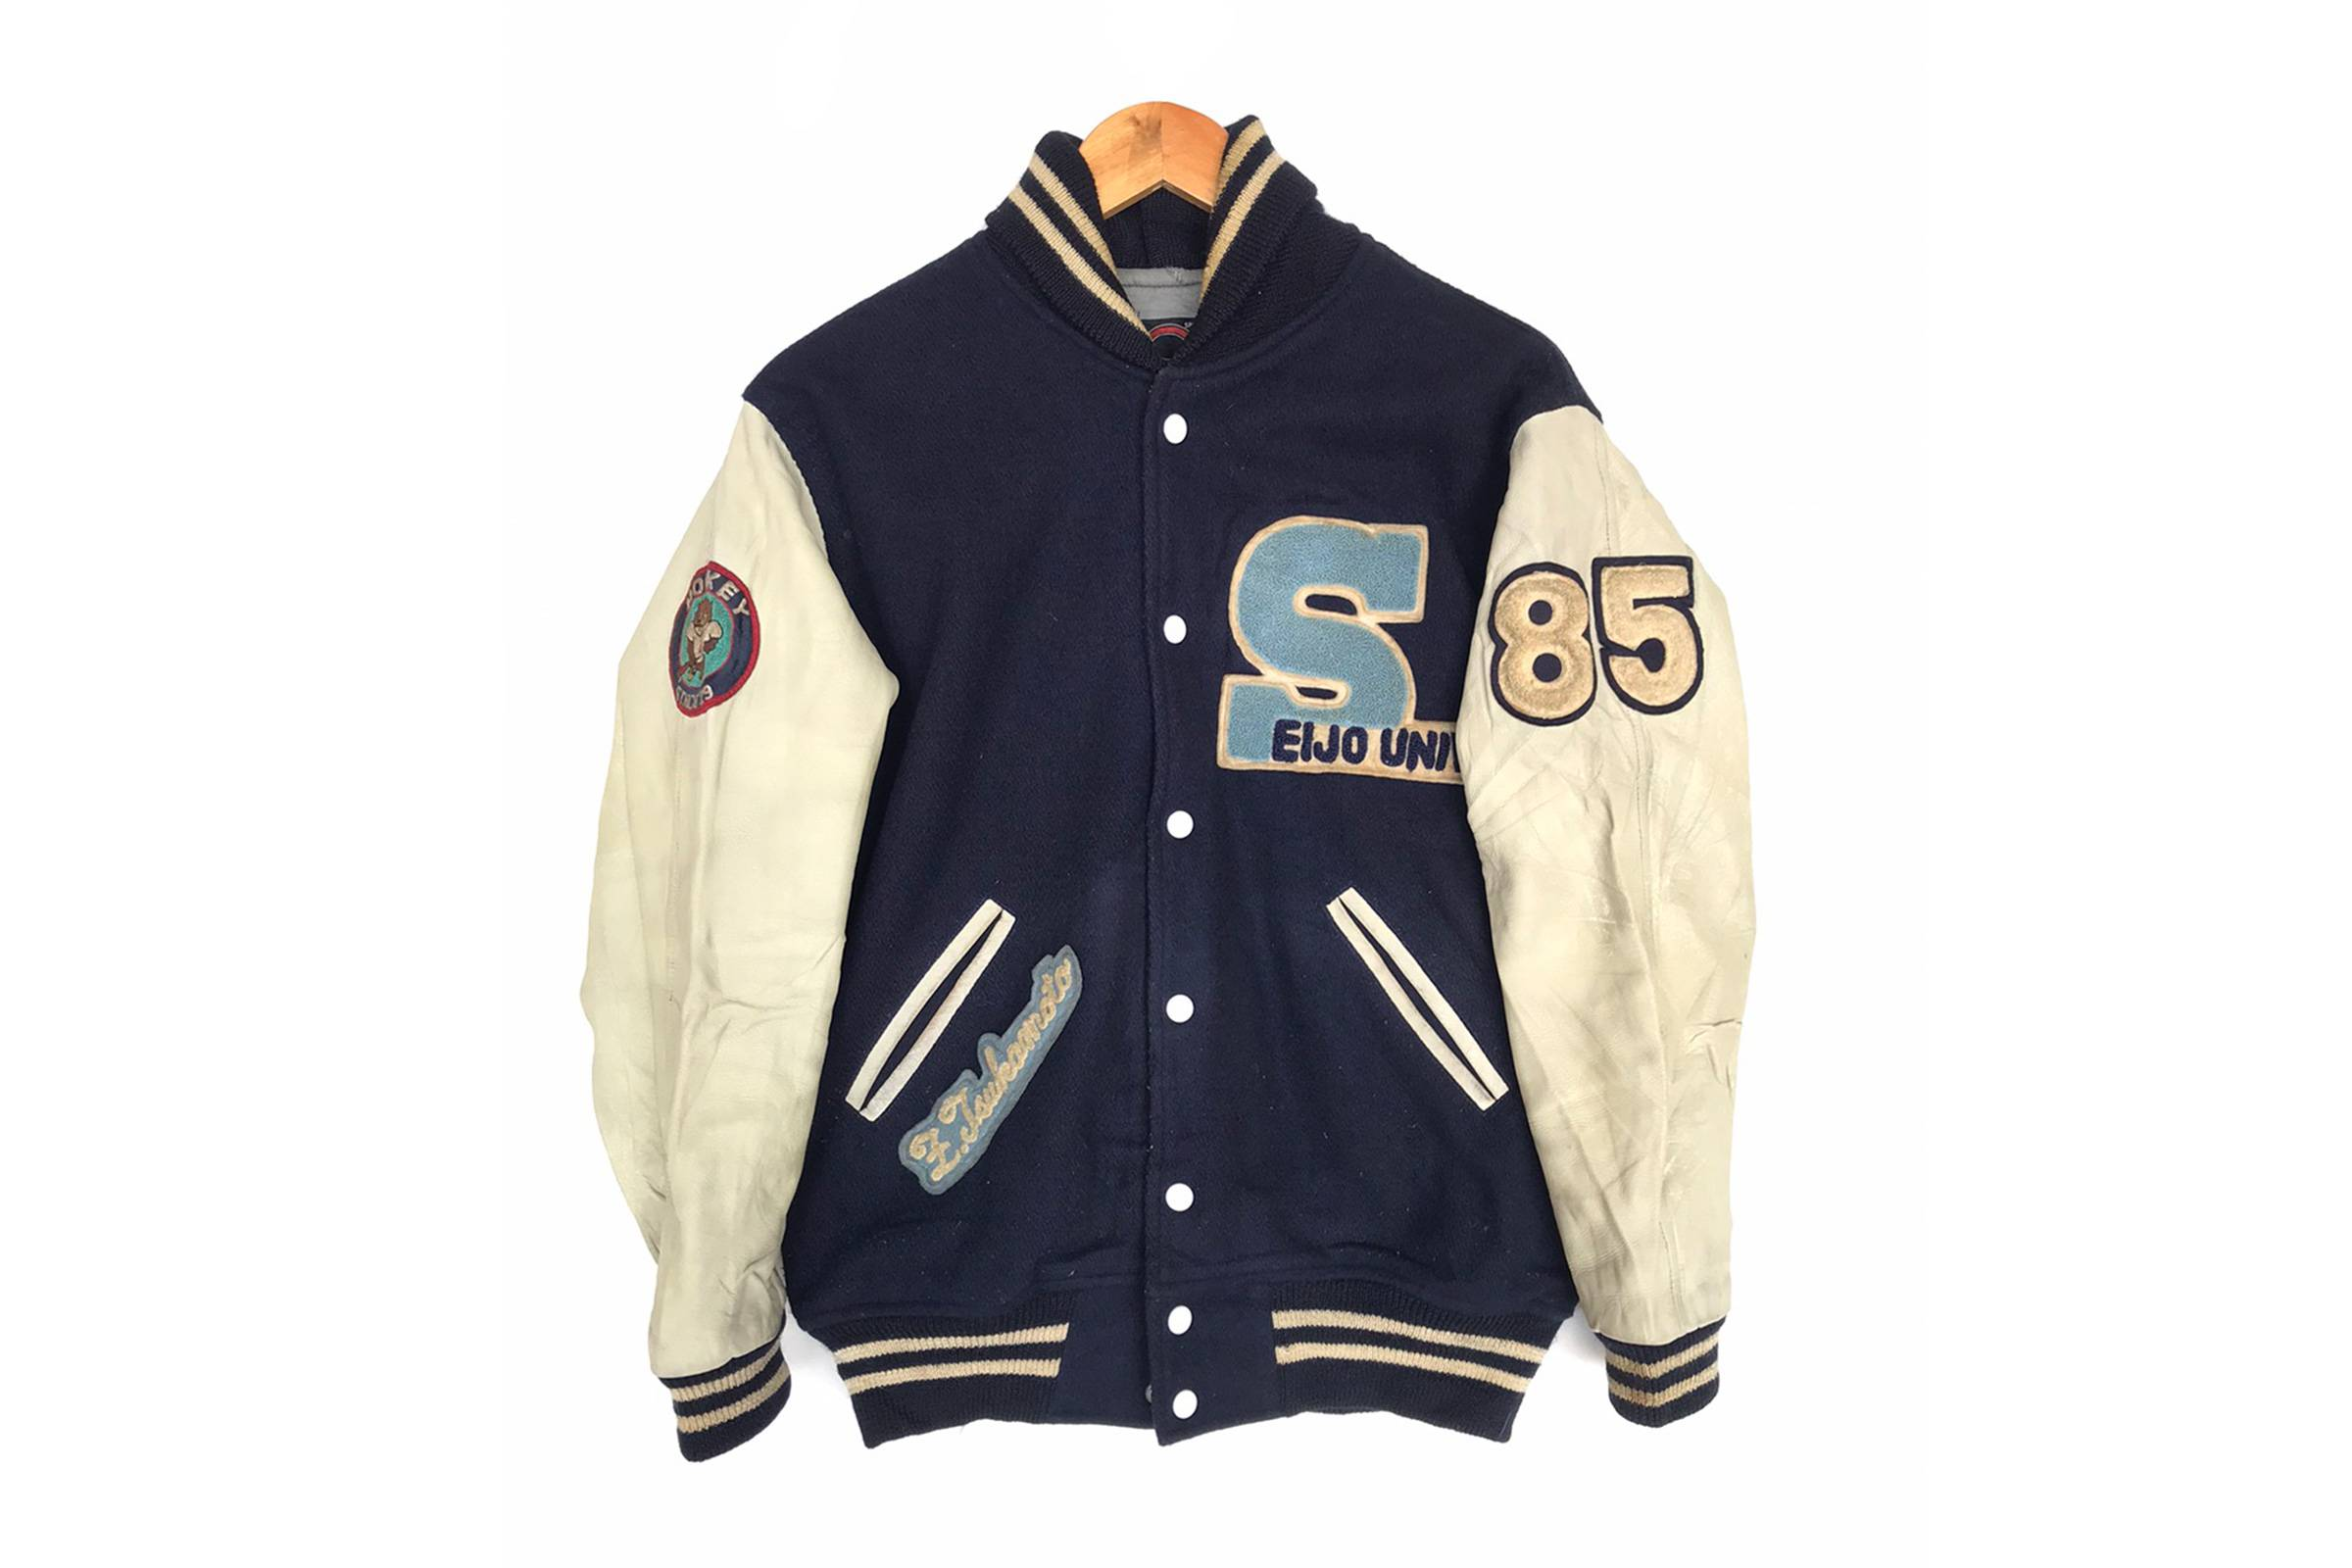 Vintage '80s Eijo University Hockey Team Varsity Jacket